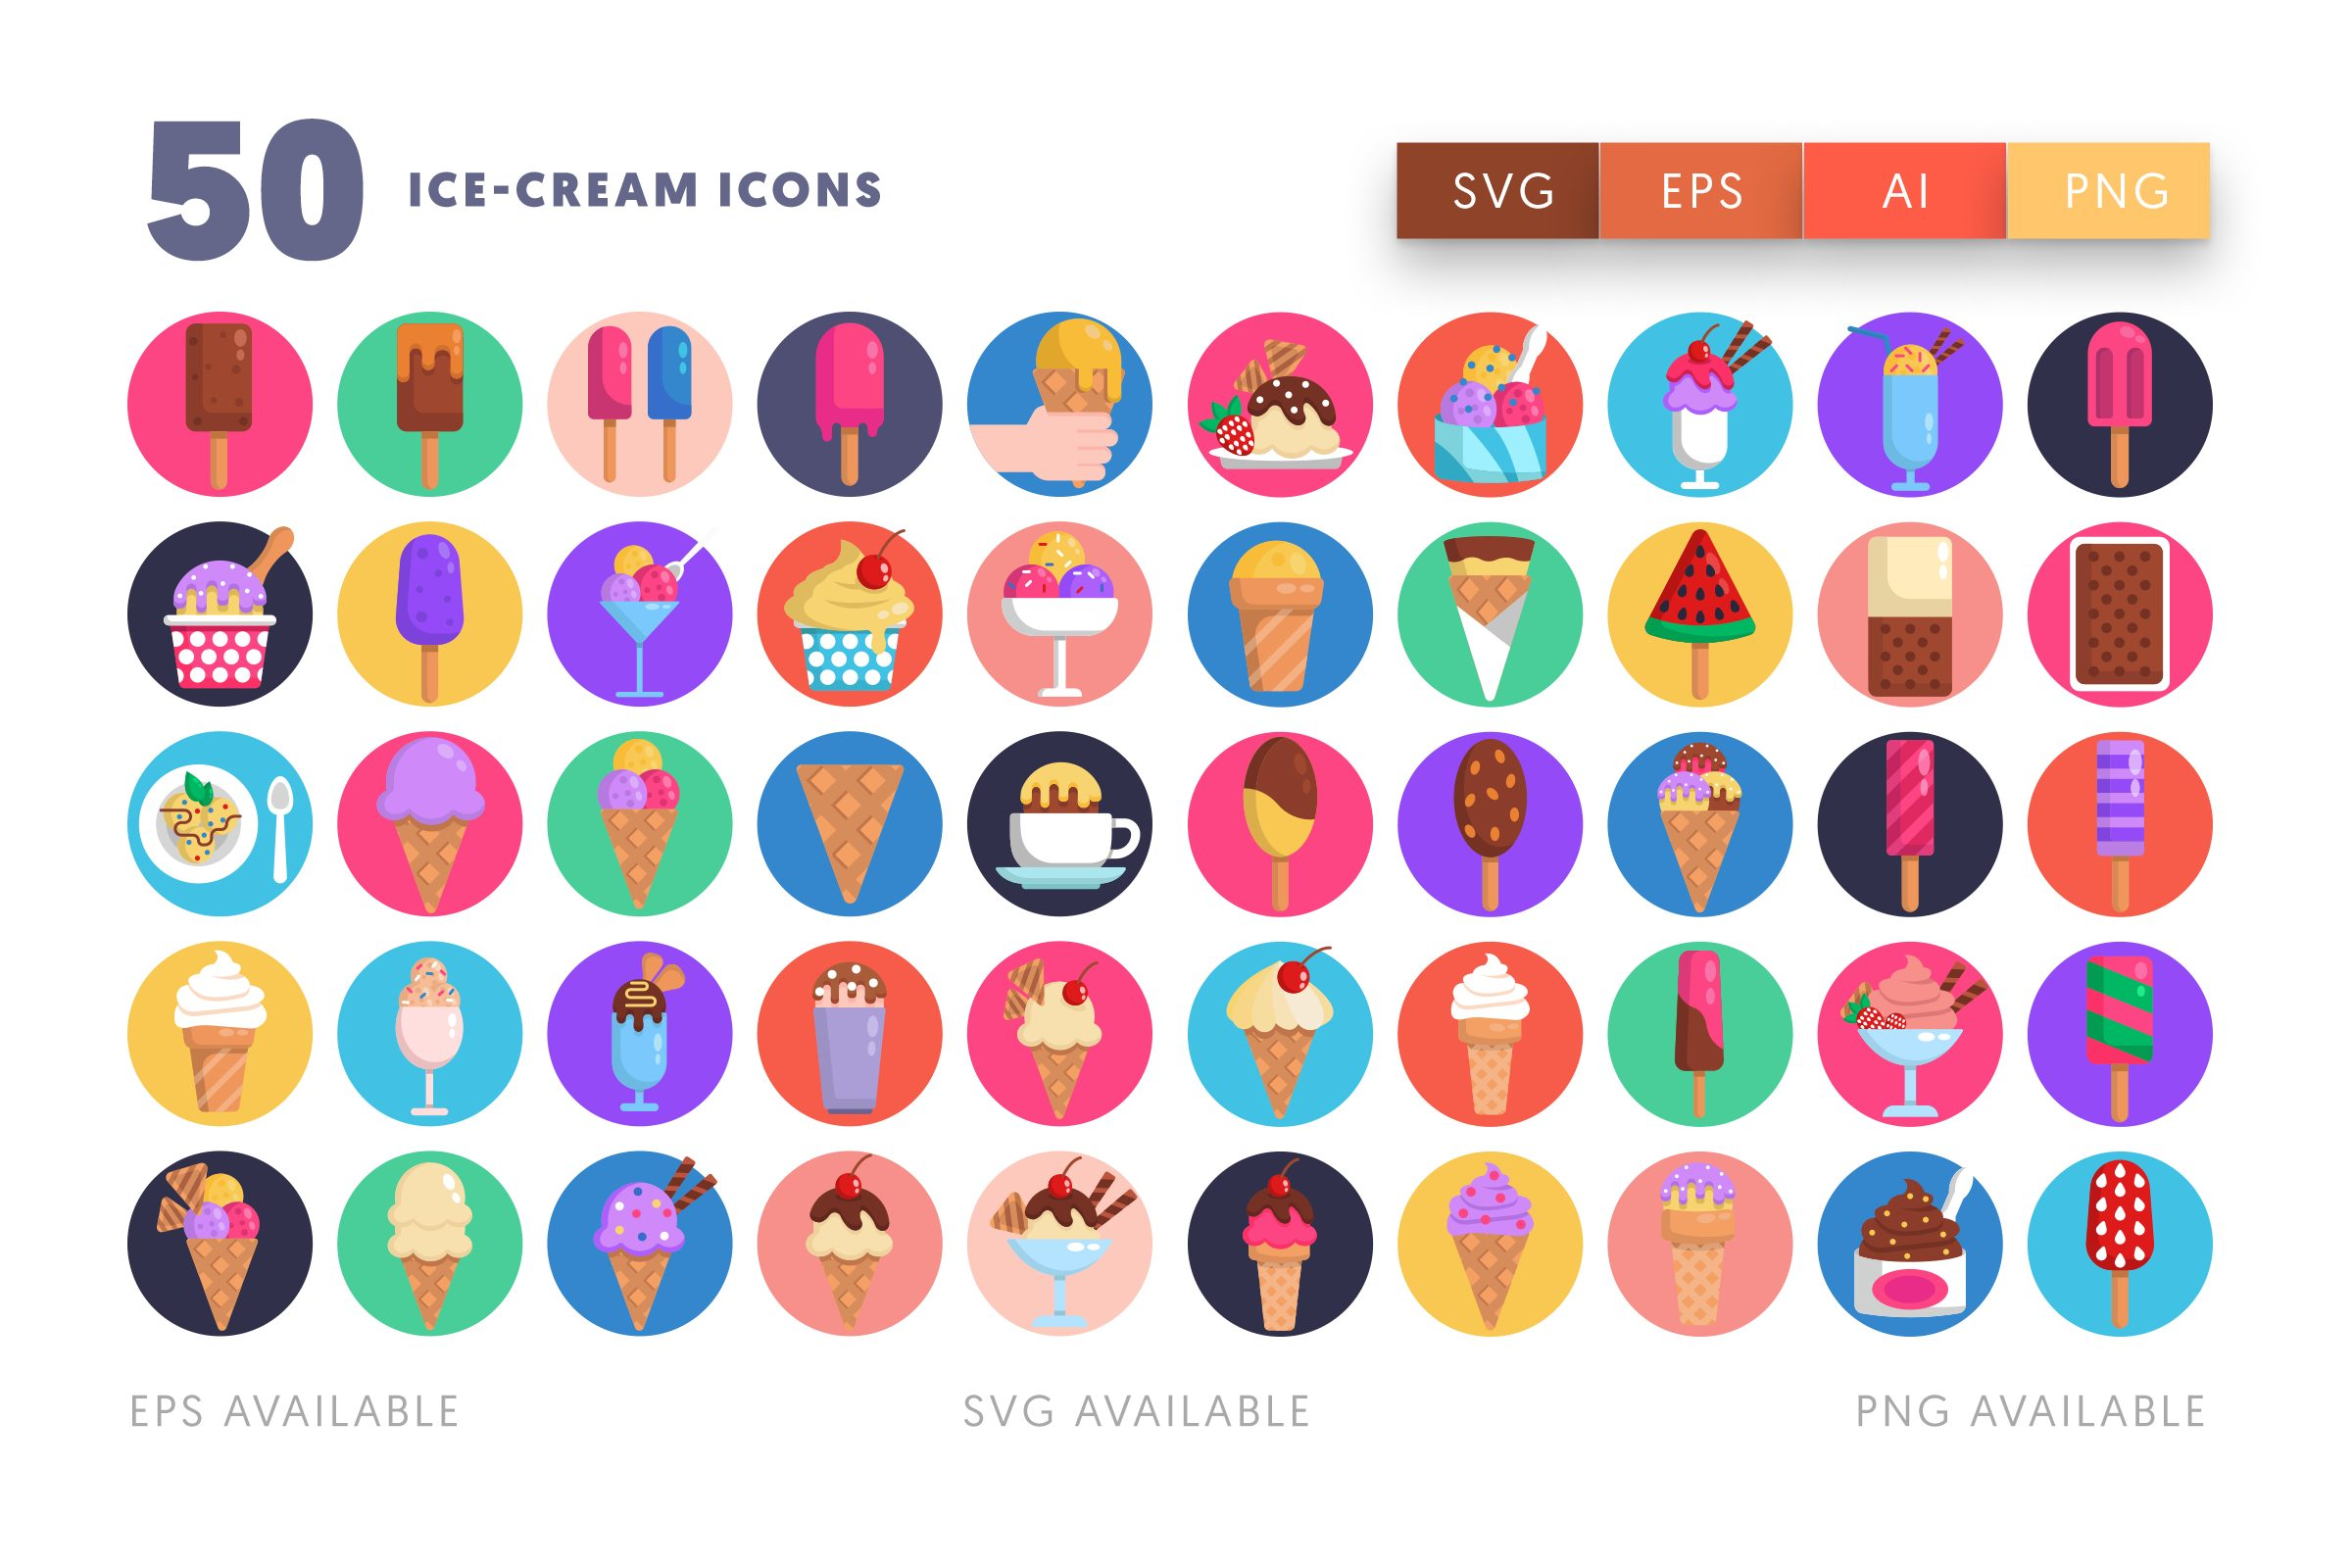 Ice Cream icons png/svg/eps